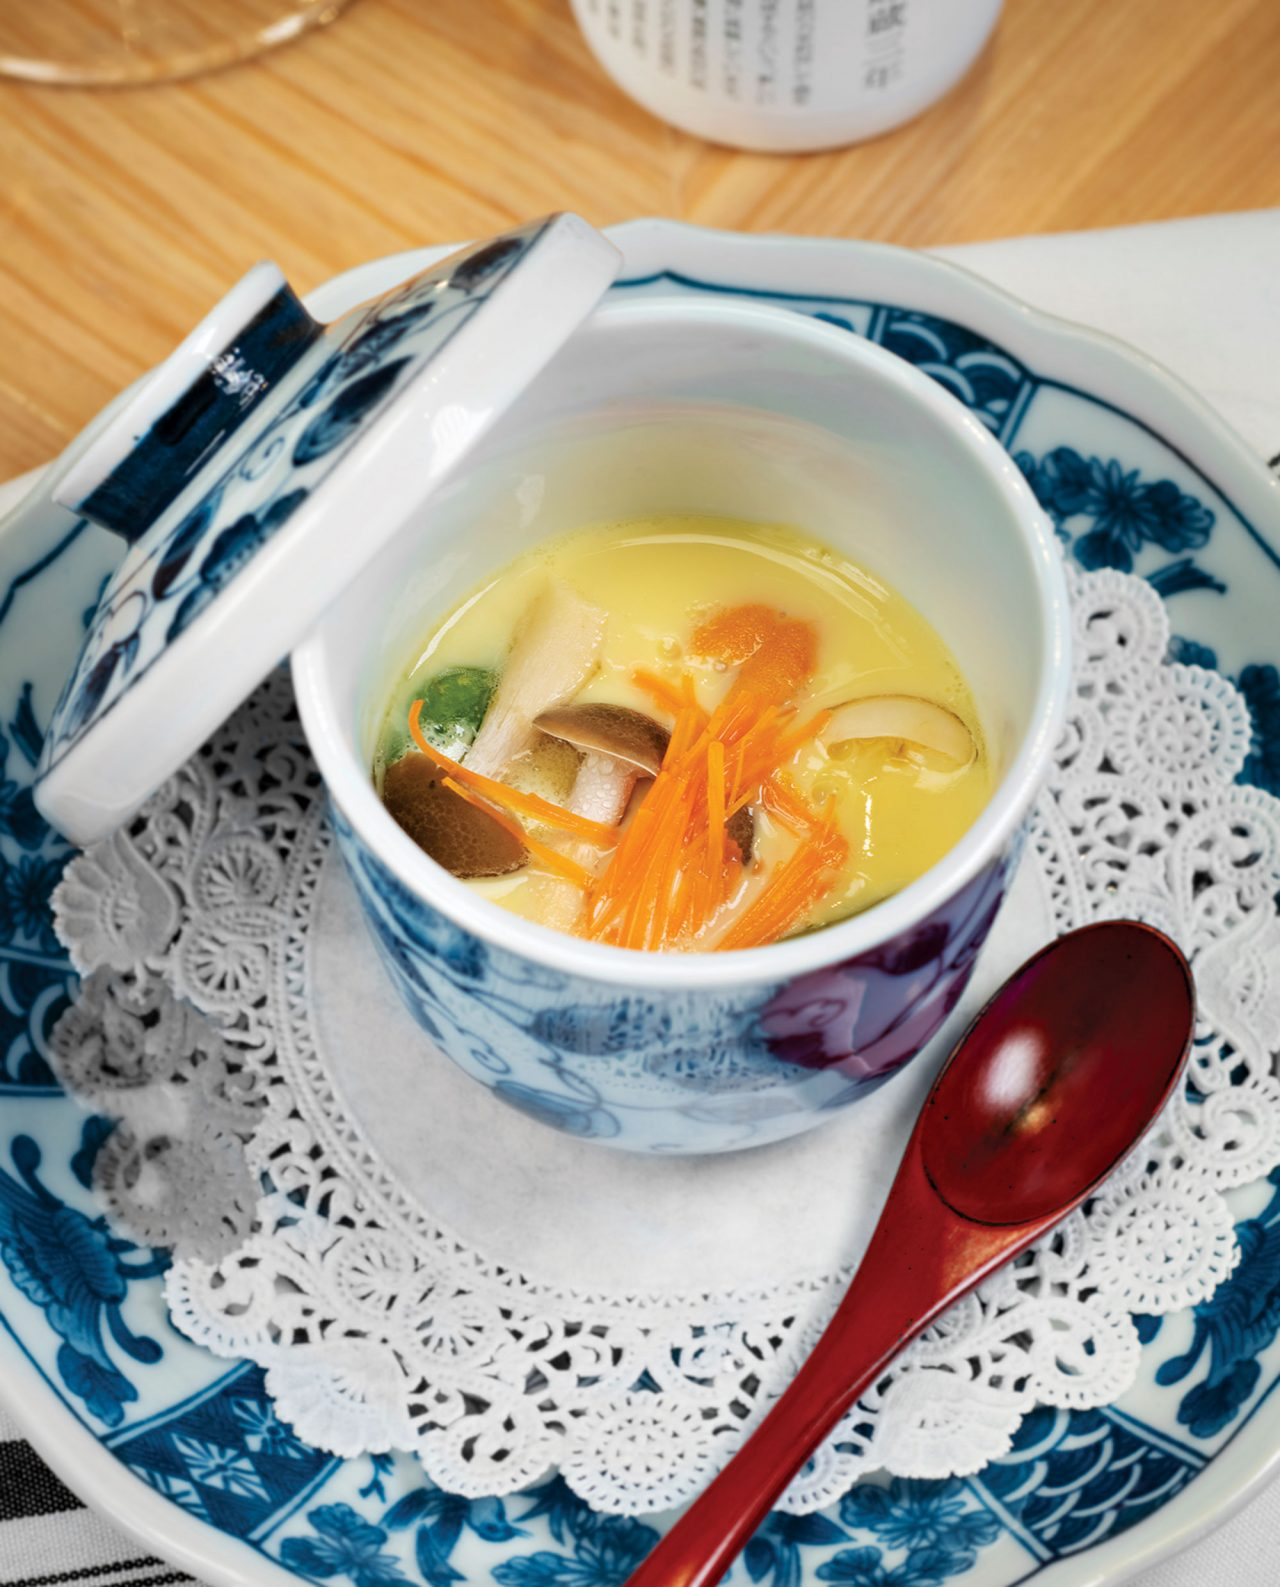 Chawanmushi with white fish, scallop and uni; Photo by Rob Ballard